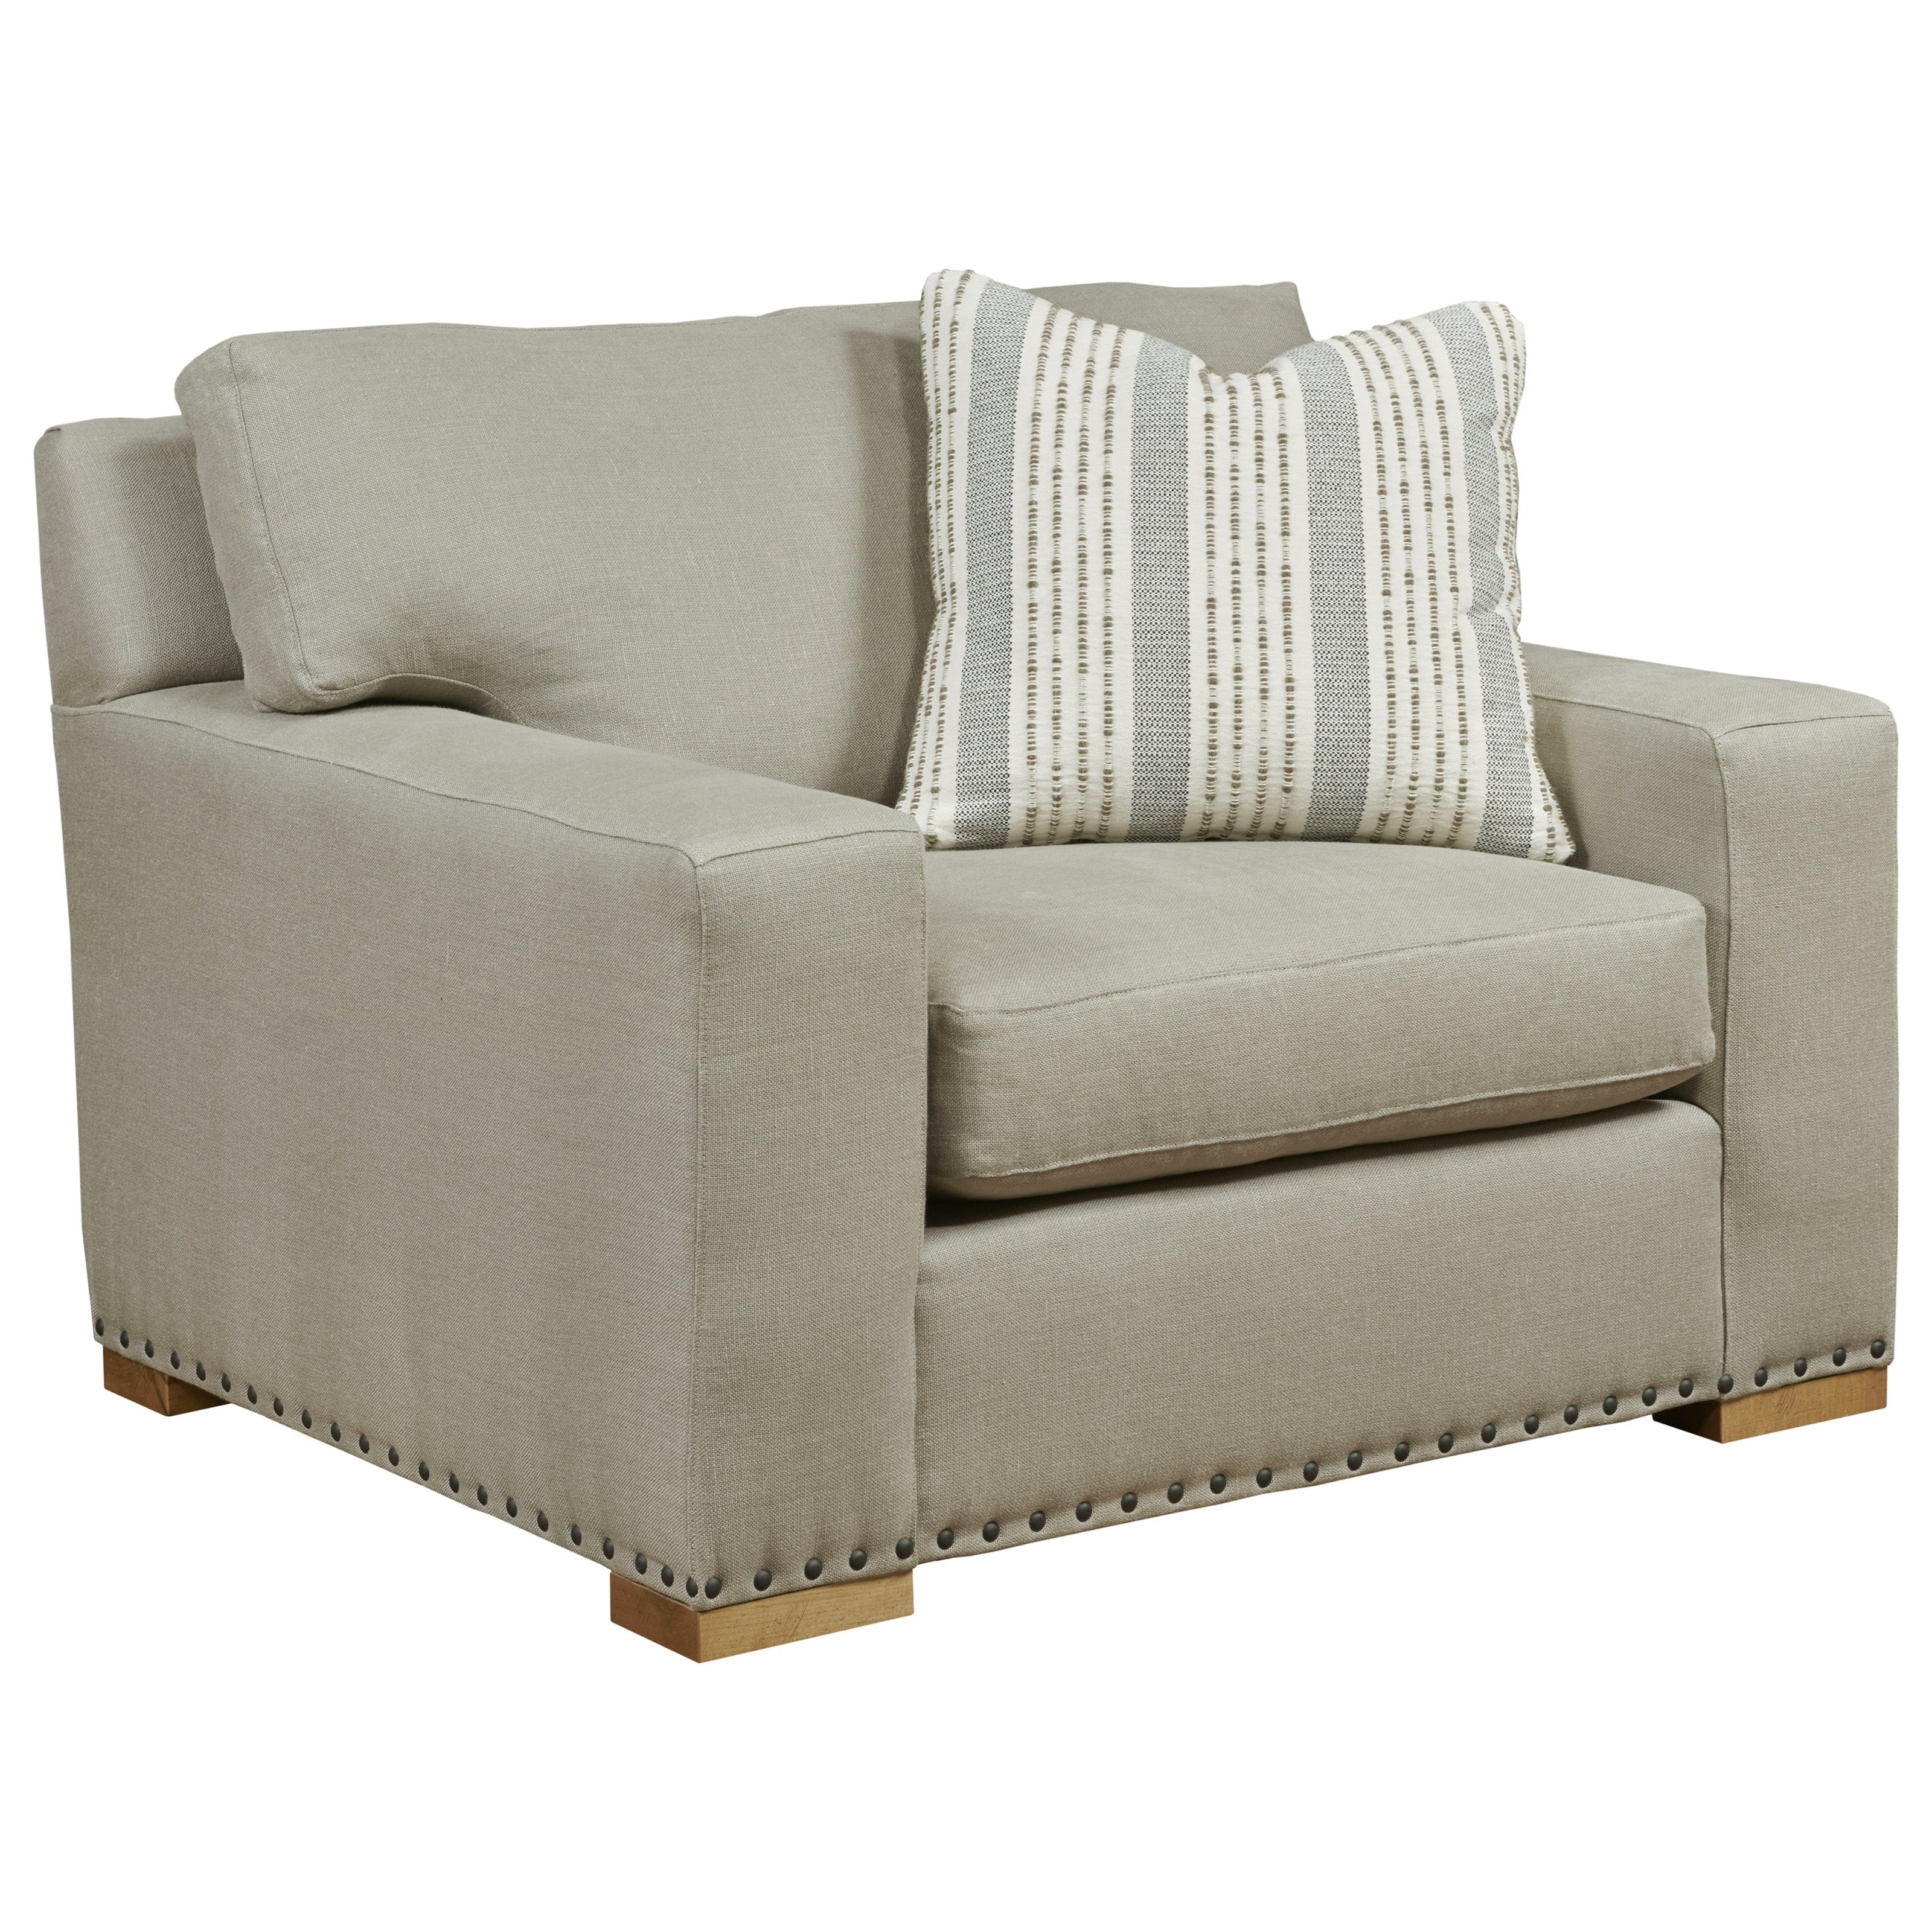 Comfort Select Chair and a Half by Kincaid Furniture at Johnny Janosik